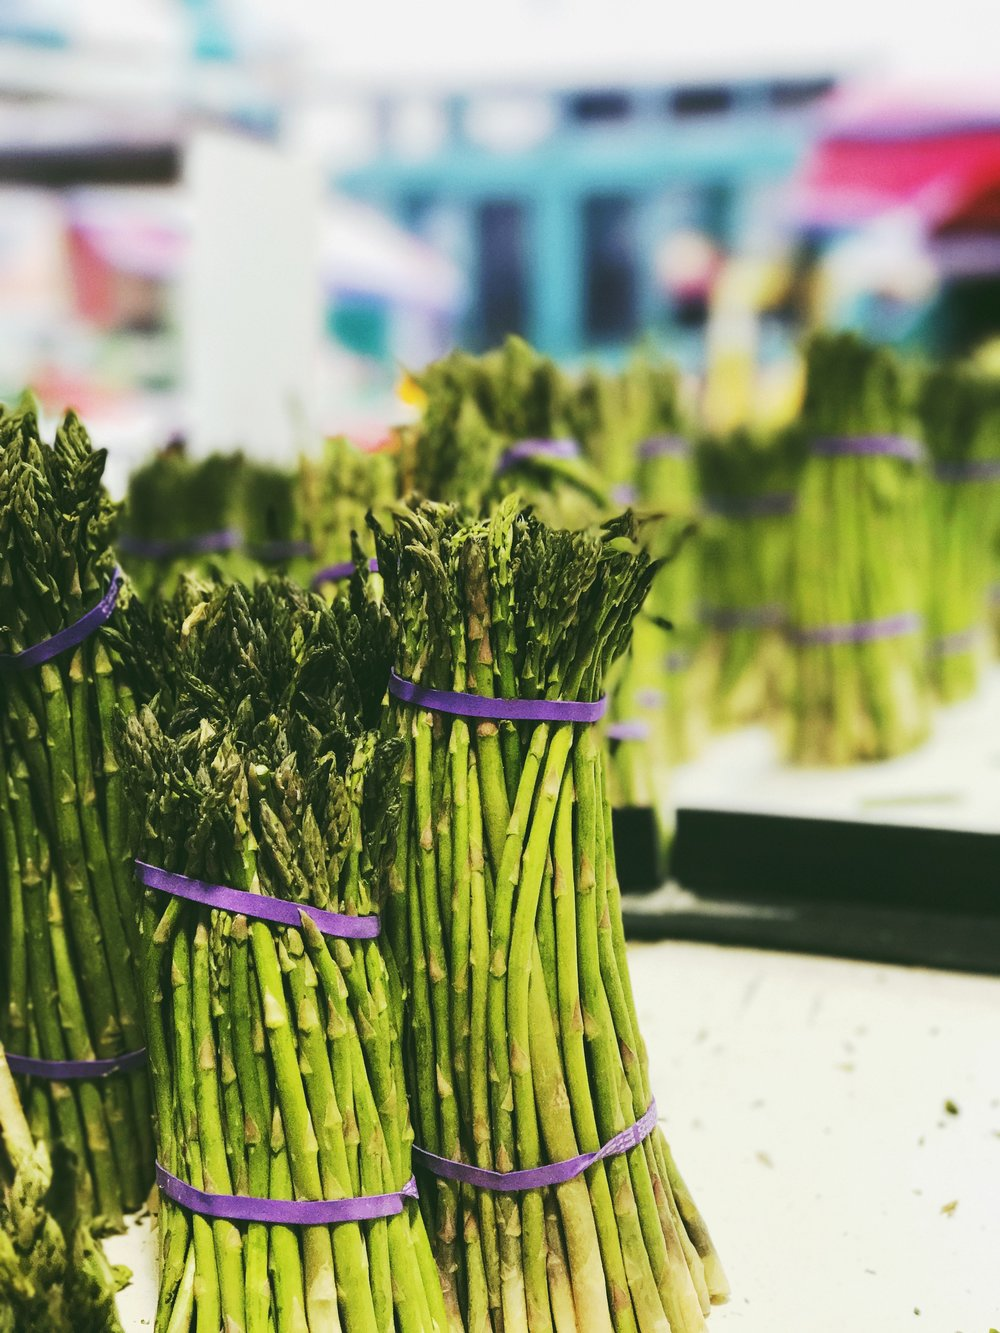 Asparagus at Marché Jean-Talon. Exposure 1/60 at f/2.8. Edited with VSCO.